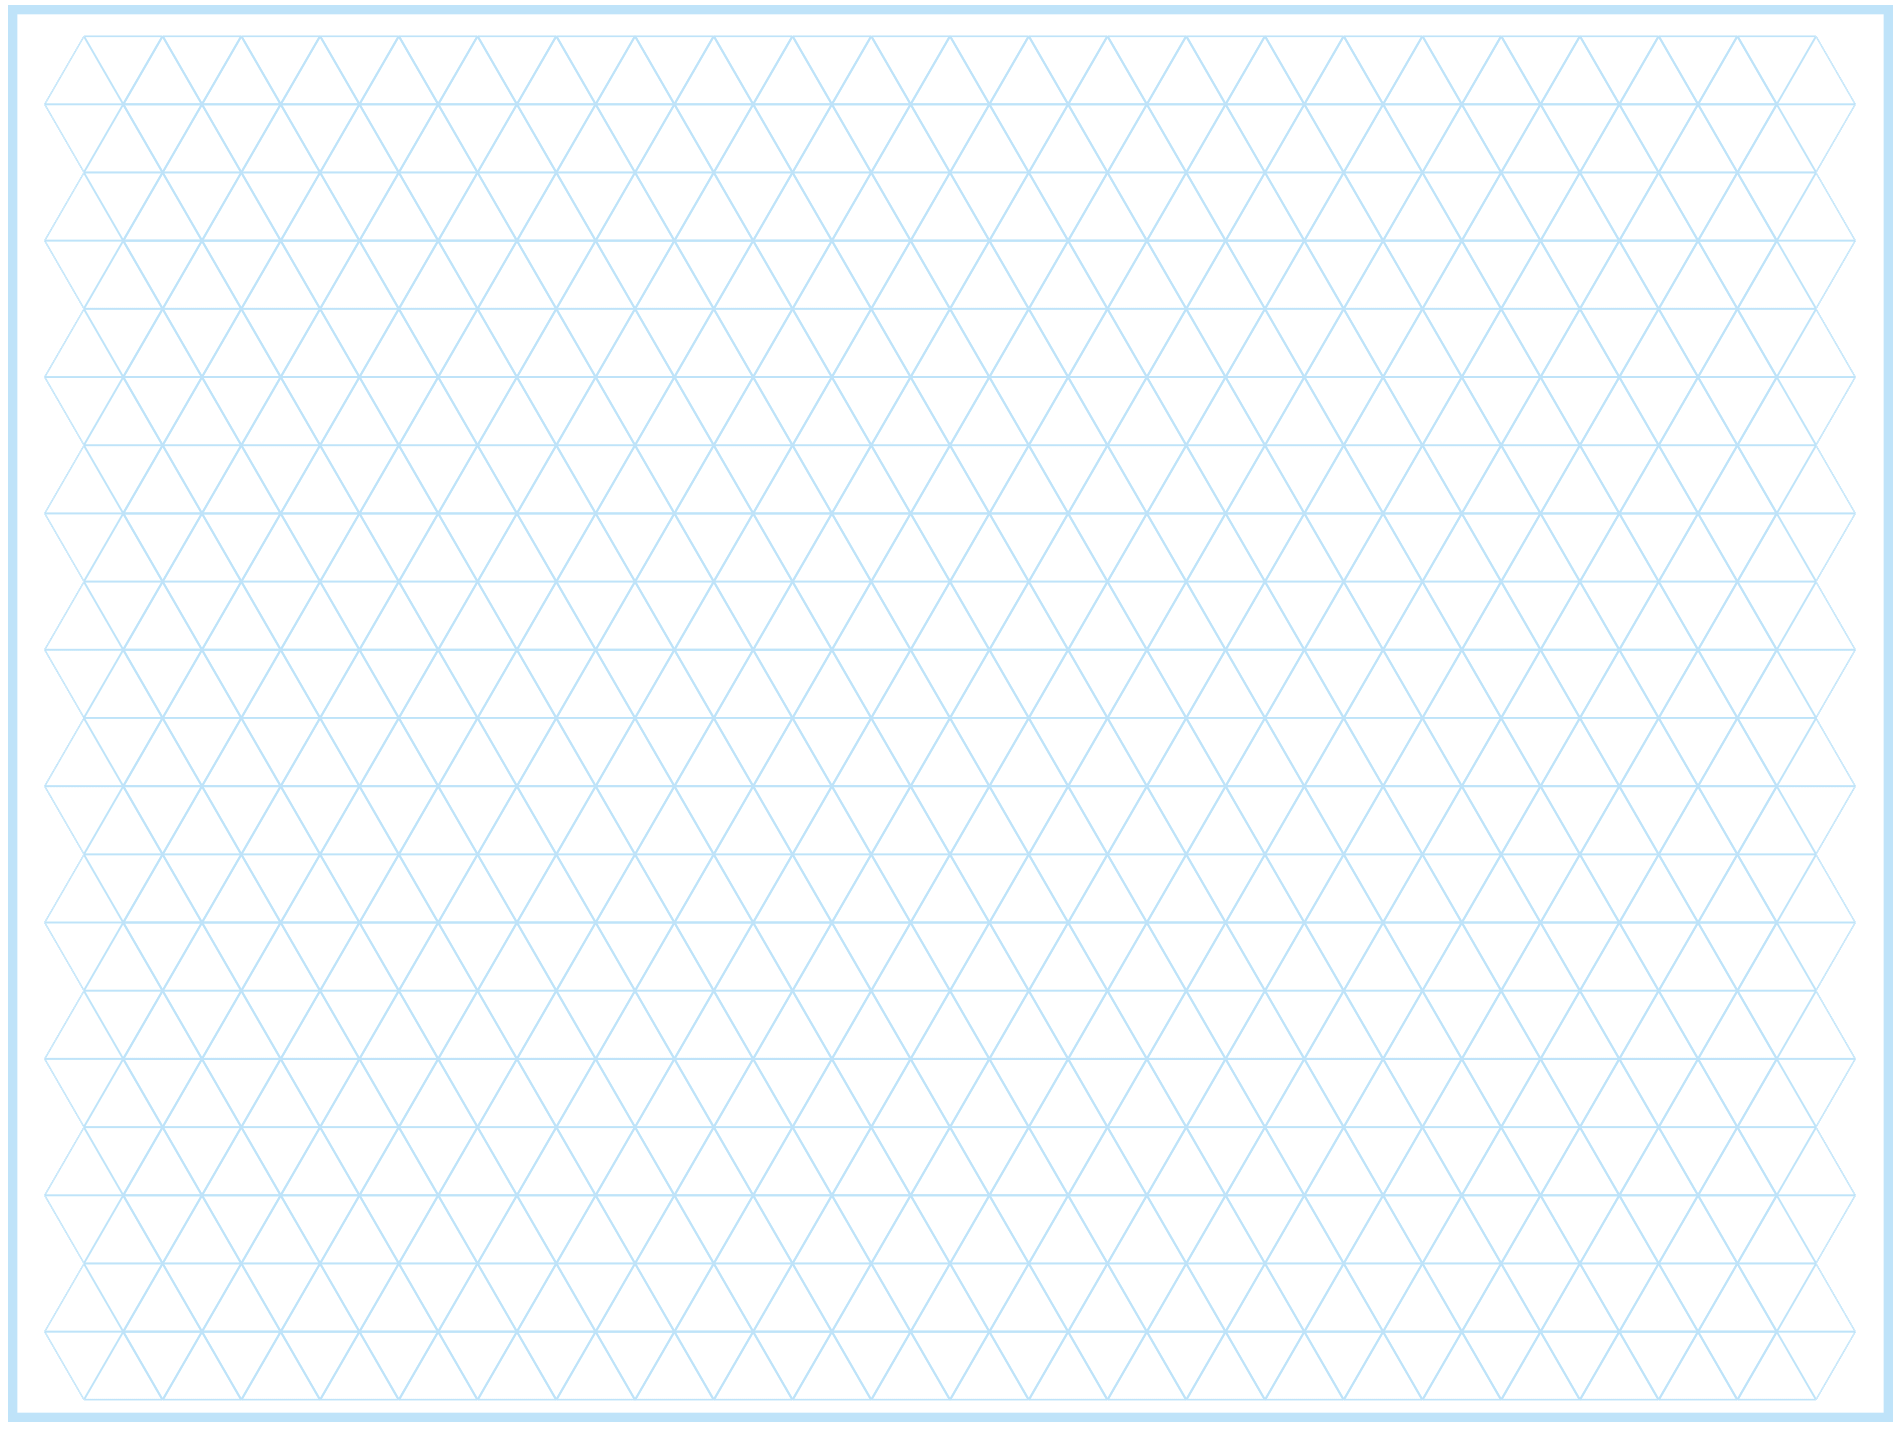 Triangle Printable That Are Massif